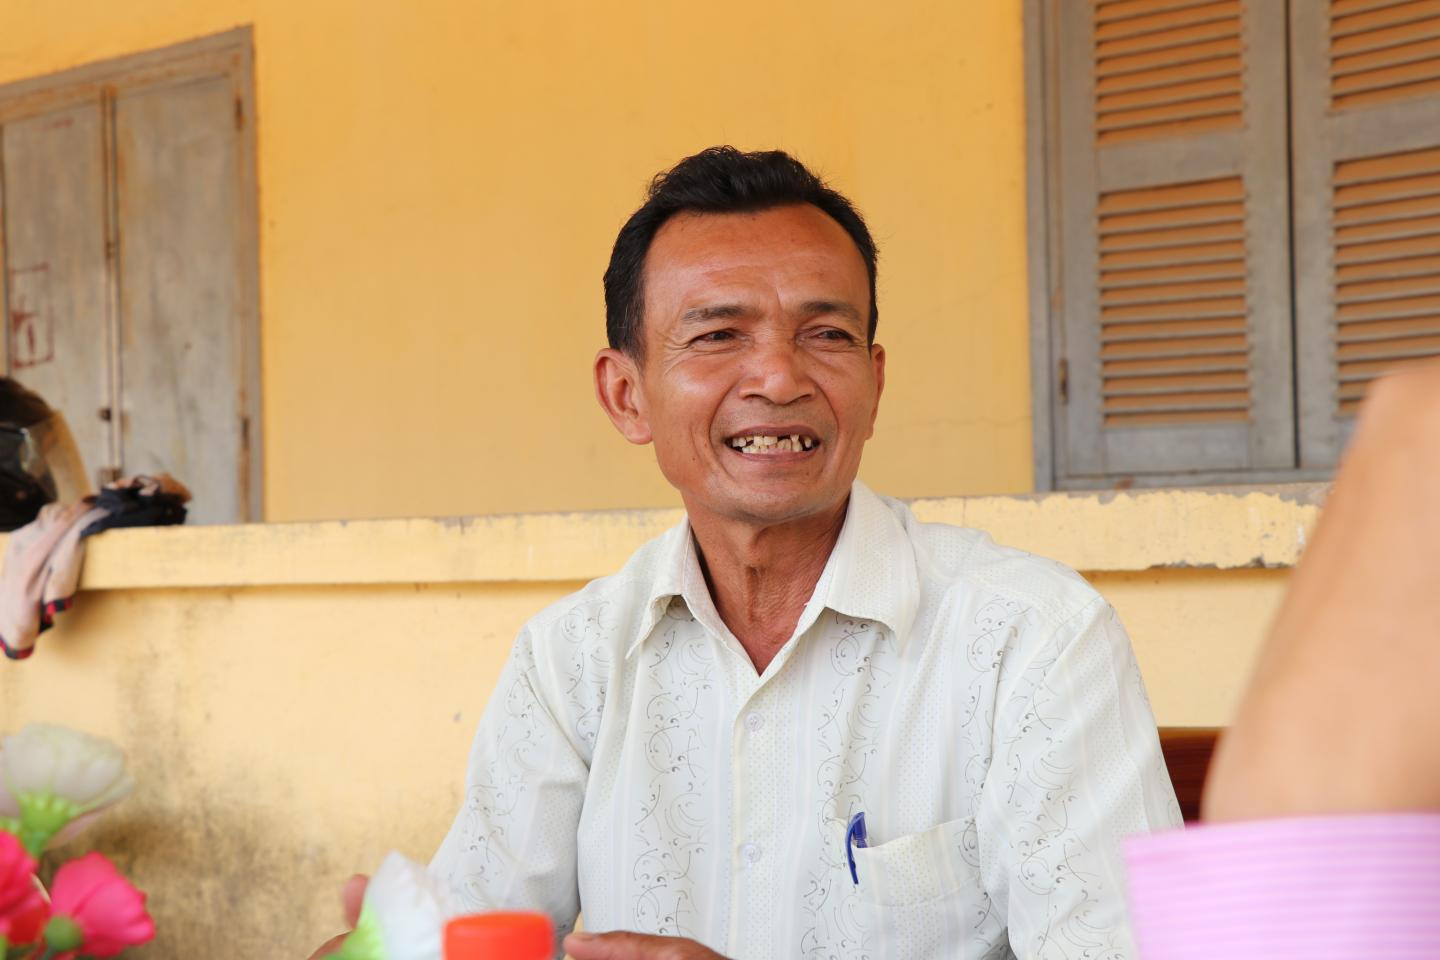 Phuok Nuok, School Director of Thmor Sor lower secondary school in Thmor Sor village at Takeo province.